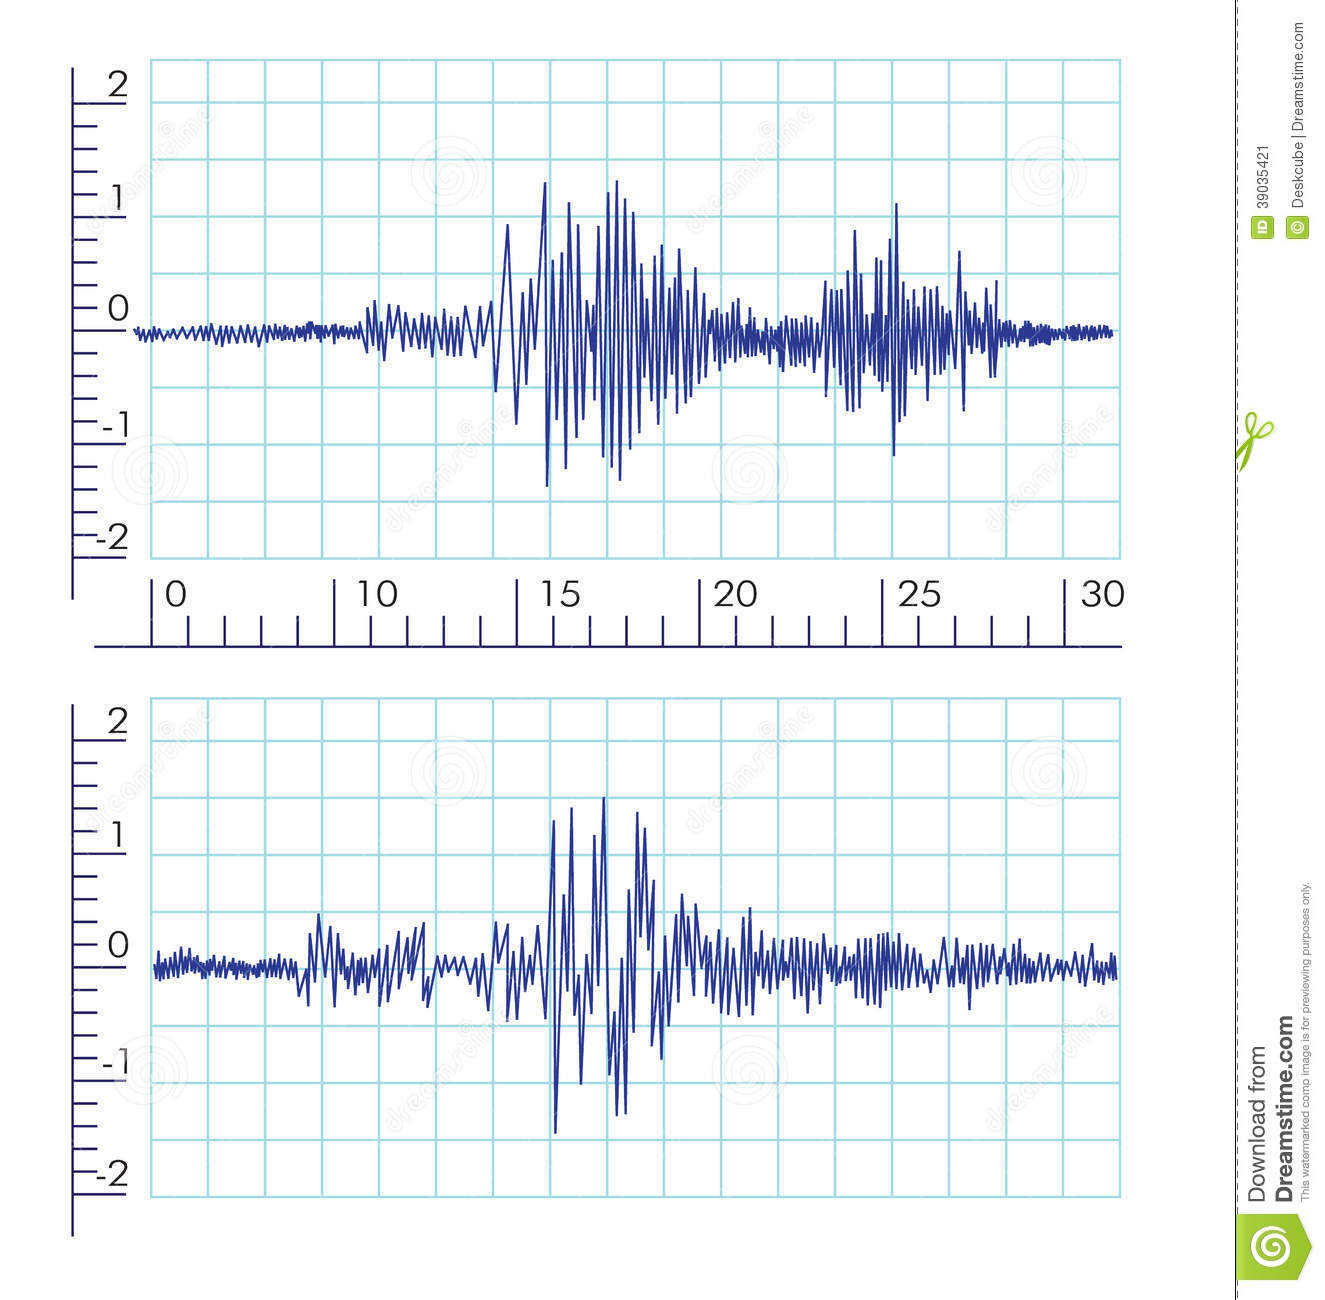 earthquake and seismic waves Description at 4:30 am on january 17, 1994, the shaking of an earthquake awakened 10 million people in the los angeles region of southern california.